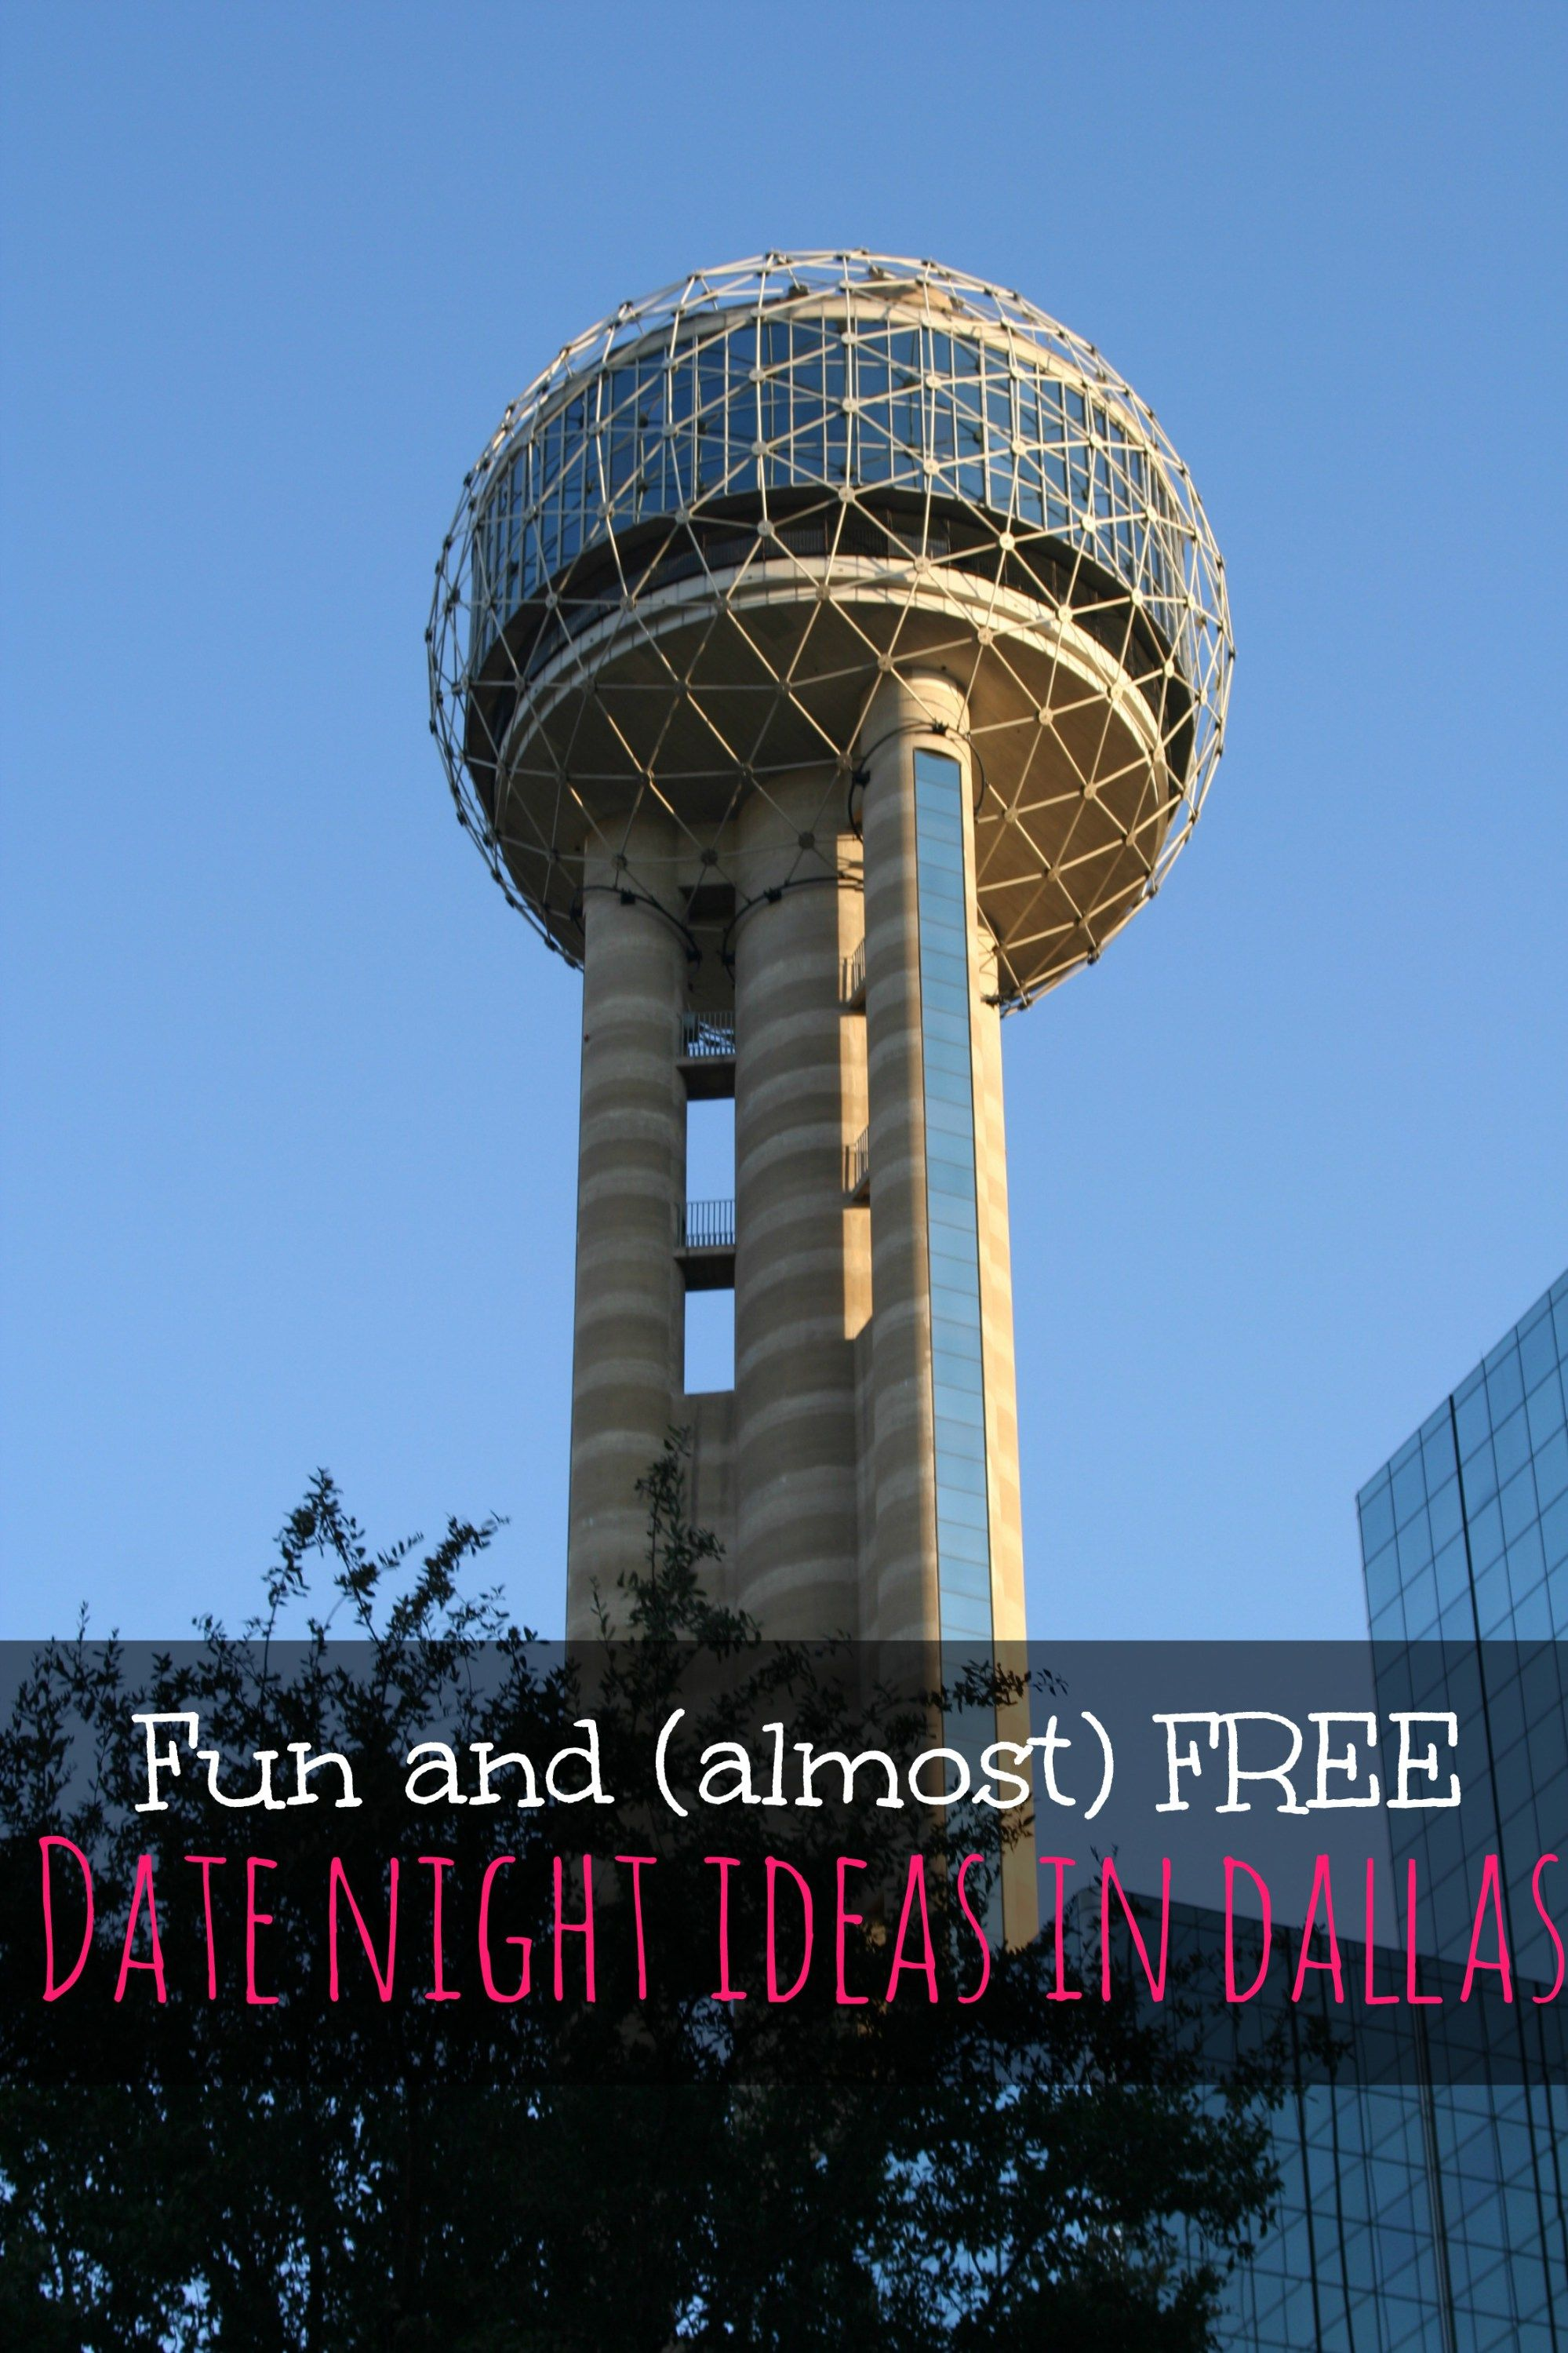 fun and free dates night ideas in dallas | travel | pinterest